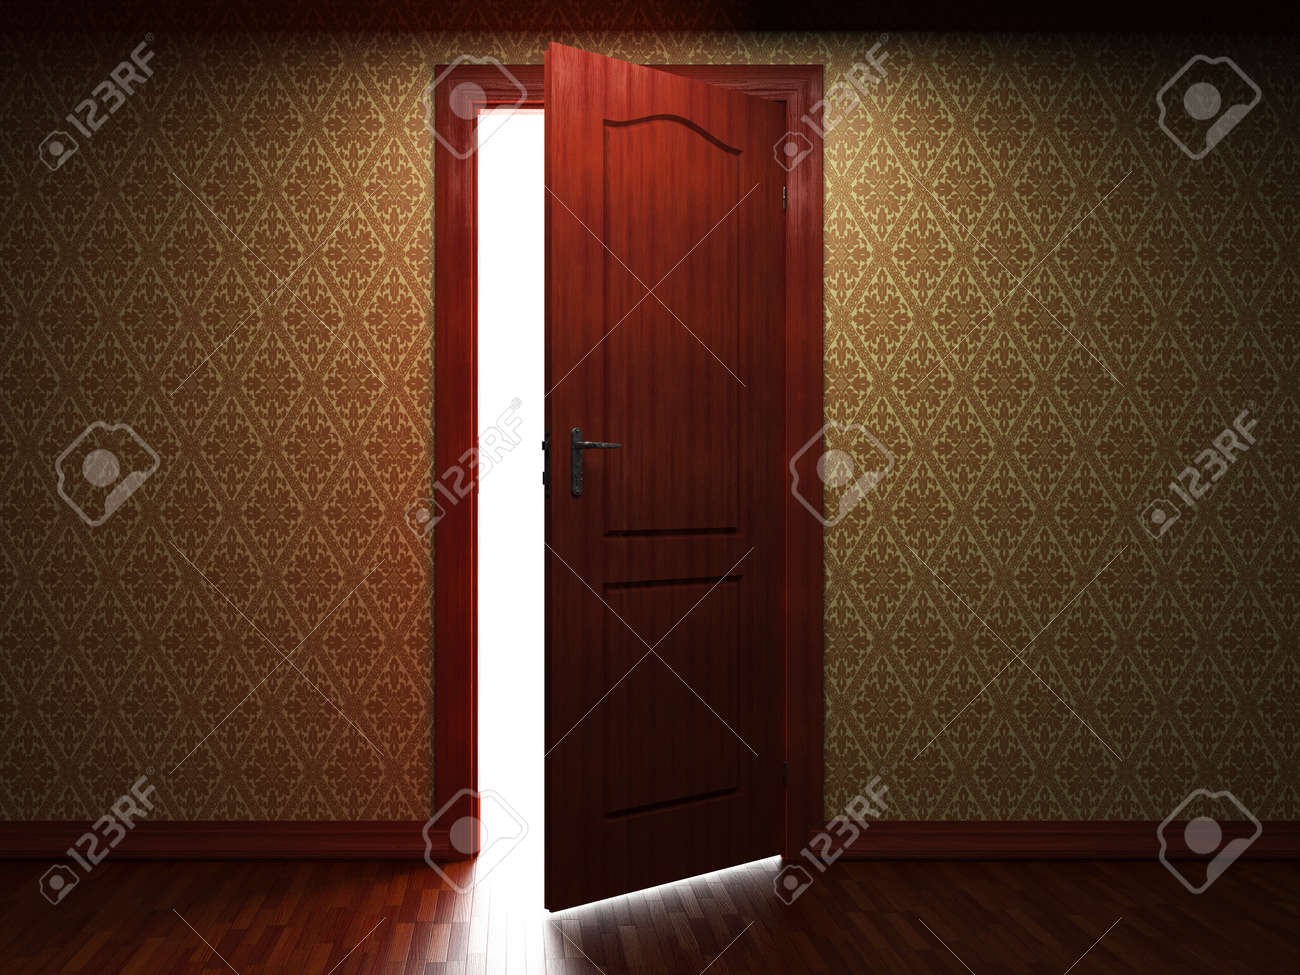 illuminated fabric wallpaper and door made in 3D Stock Photo - 8925305